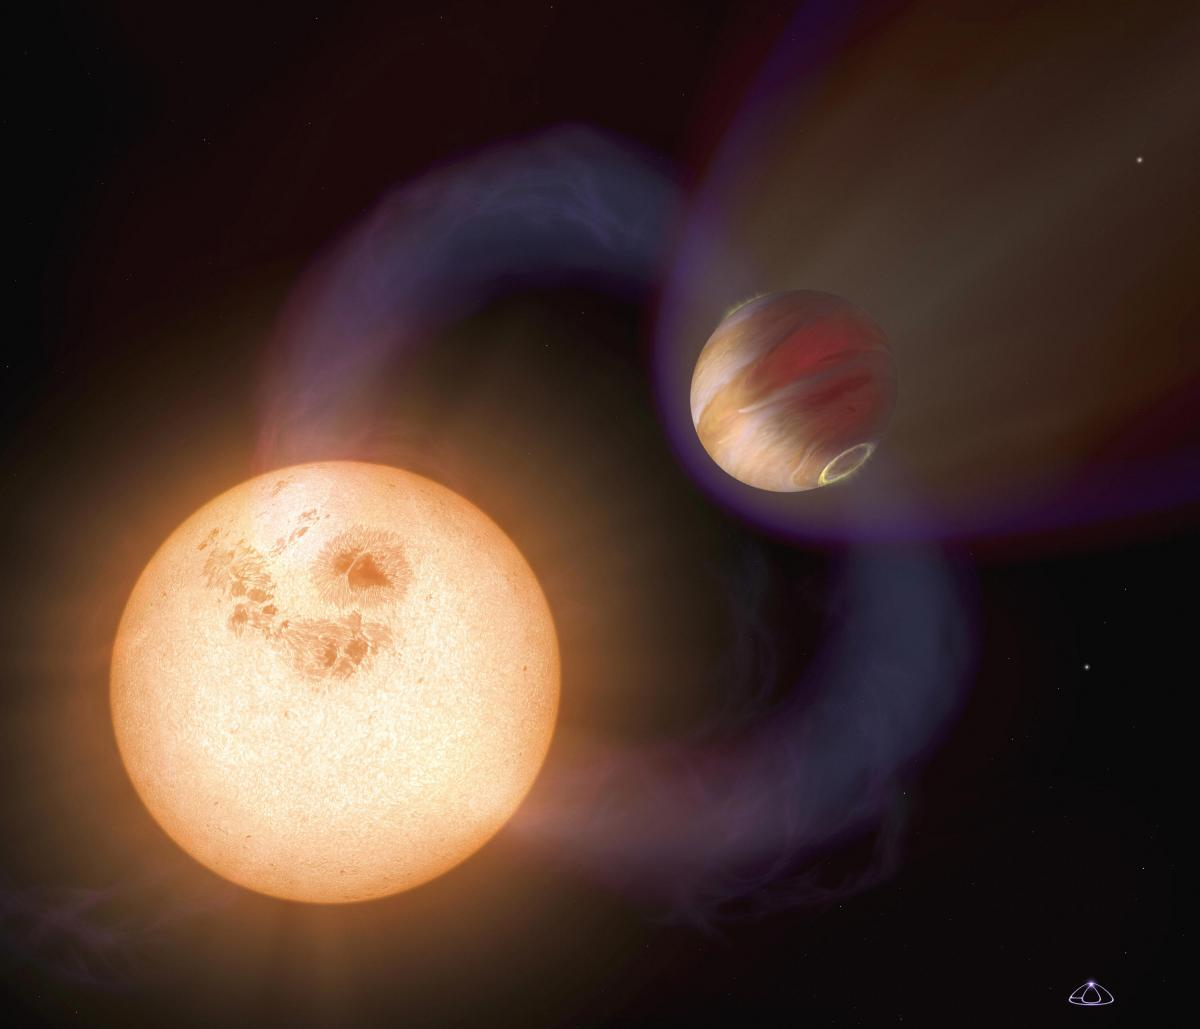 Strange Neptune-Sized Exoplanet Resembling Inflated Balloon Discovered, May Hold Key To Helium Research